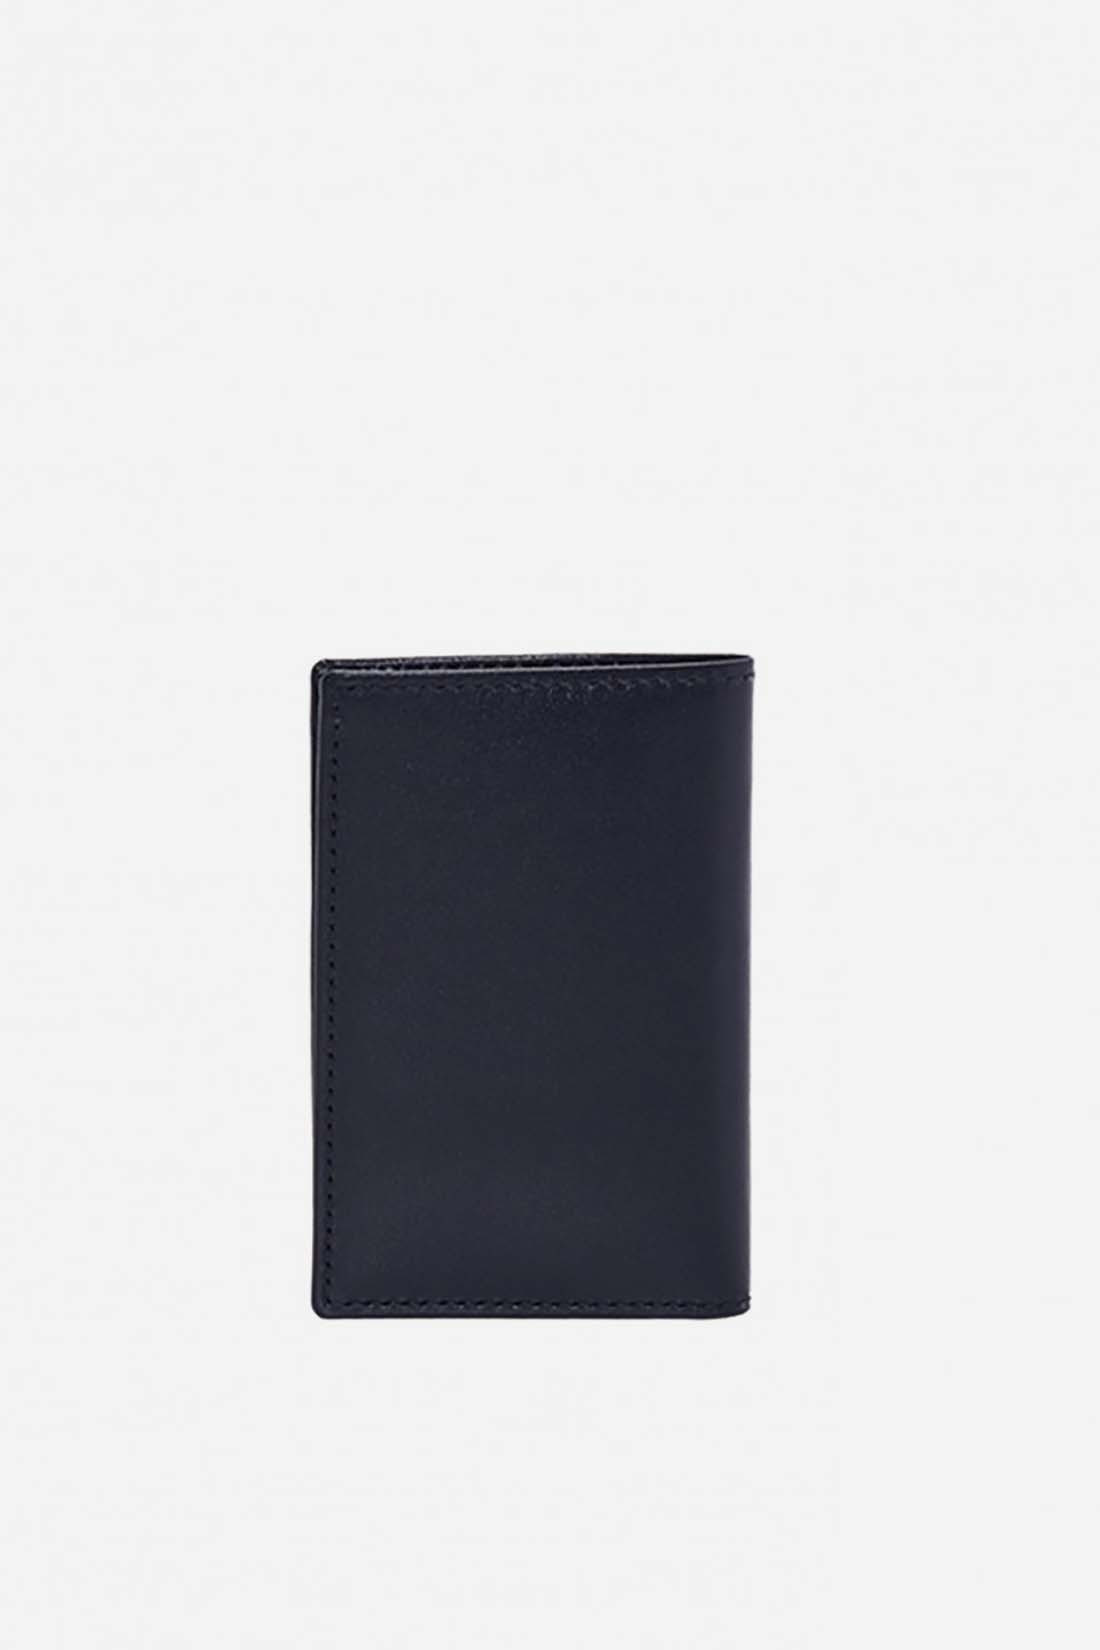 CDG WALLETS / Cdg classic leather sa6400 Navy